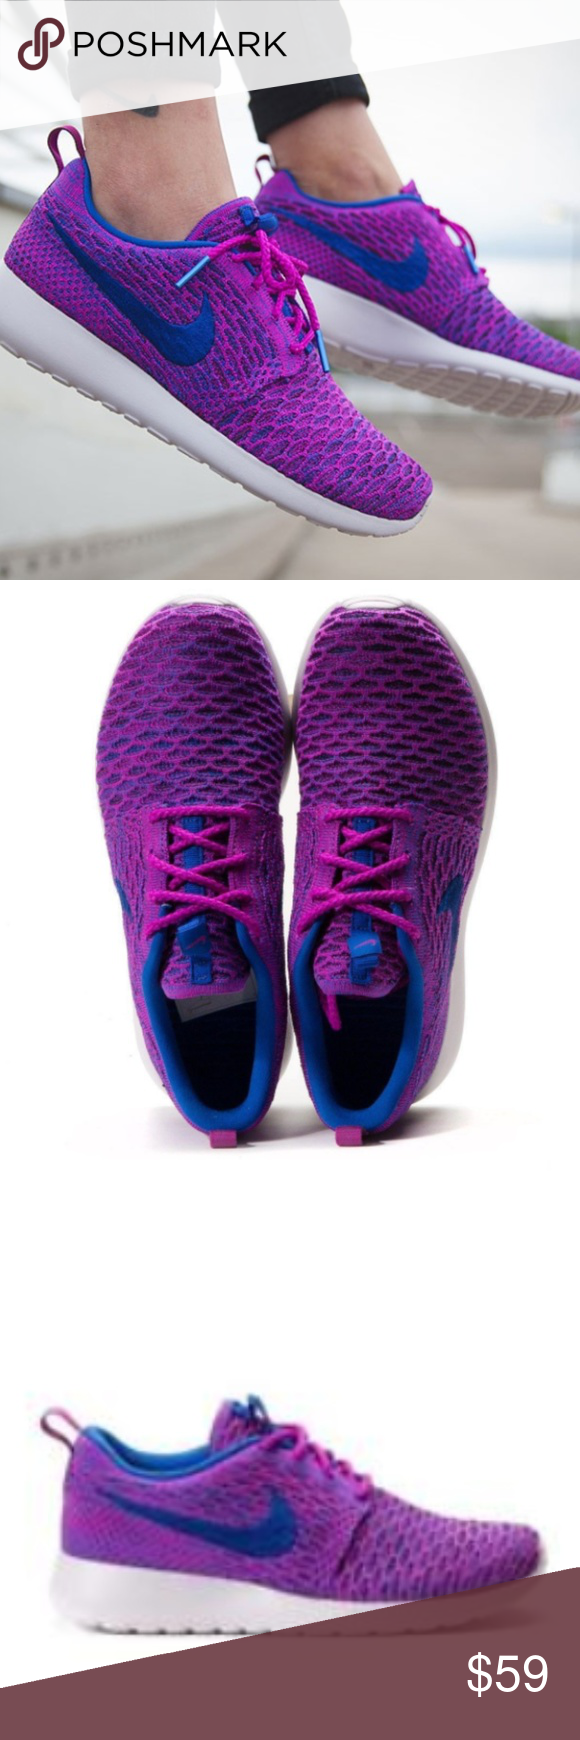 cheap for discount 37348 07fe8 Nike Roshe One Fly Knit Trainers NIKE ROSHE ONE FLYKNIT Trainers Fuchsia  Flash Style 704927 501